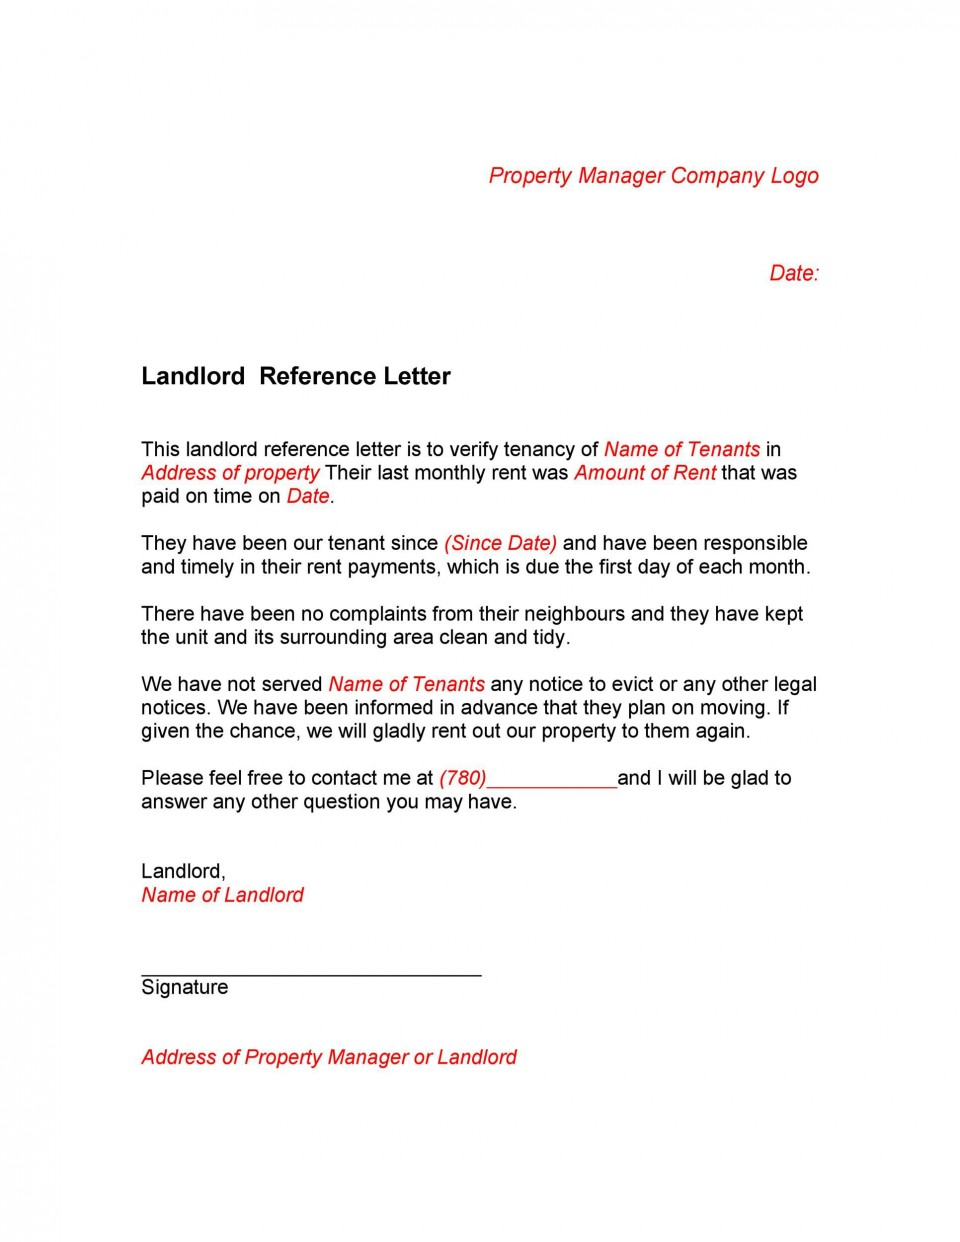 005 Staggering Free Reference Letter Template For Landlord Design  Rental960